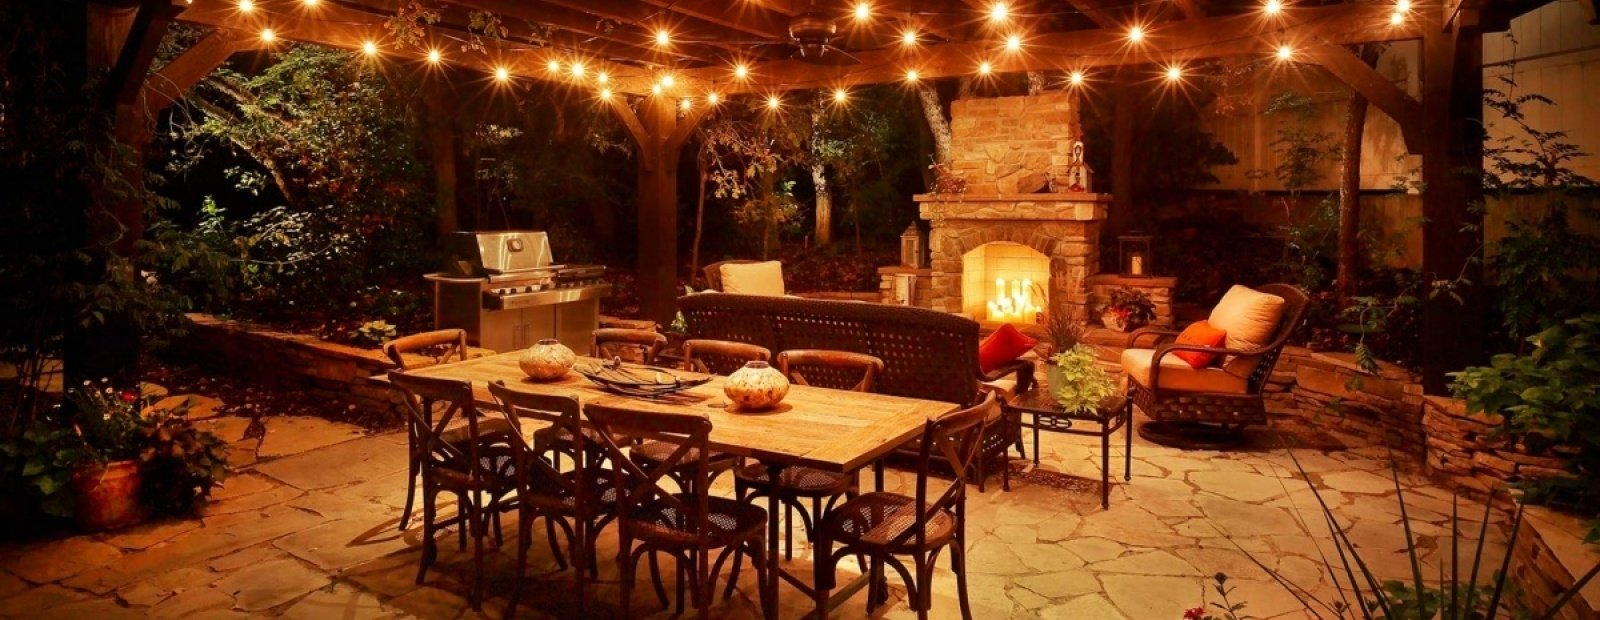 10 Amazing Outdoor Lighting Ideas For Patios patio lighting ideas outdoor and calladoc 2020